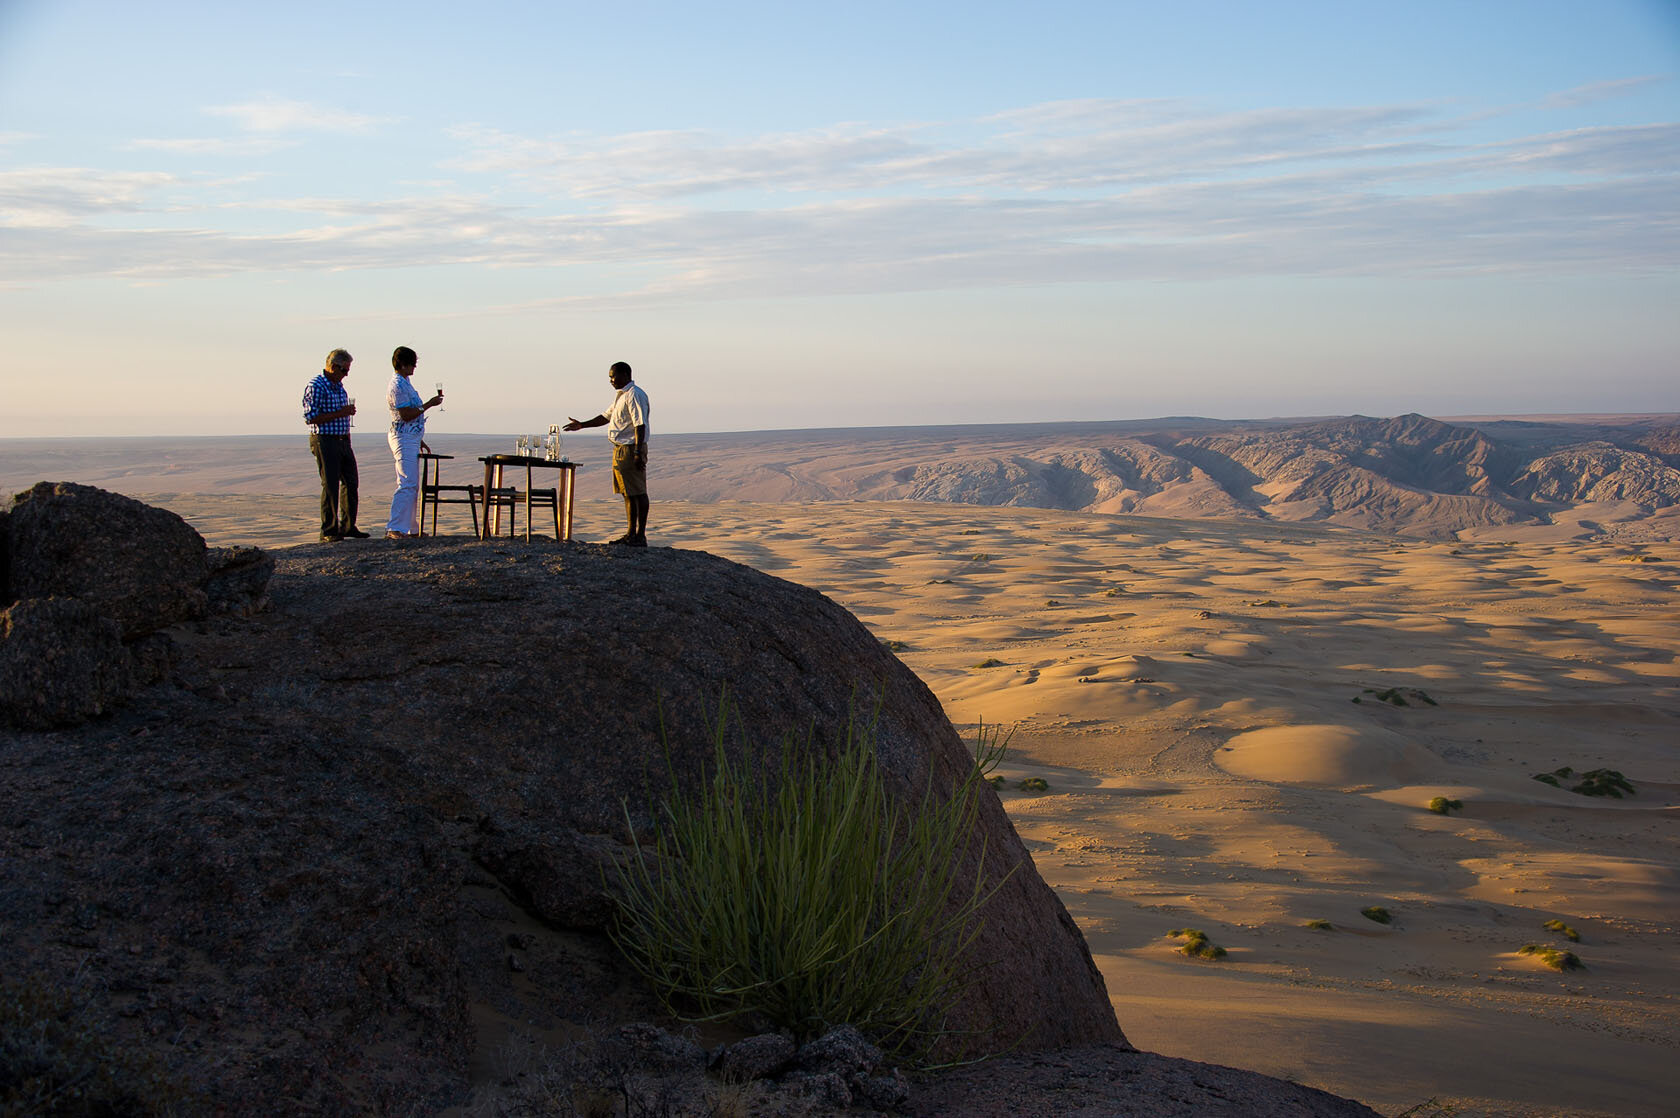 14 d/ 13 n classic safari from $3,735 PPs - guided namibia